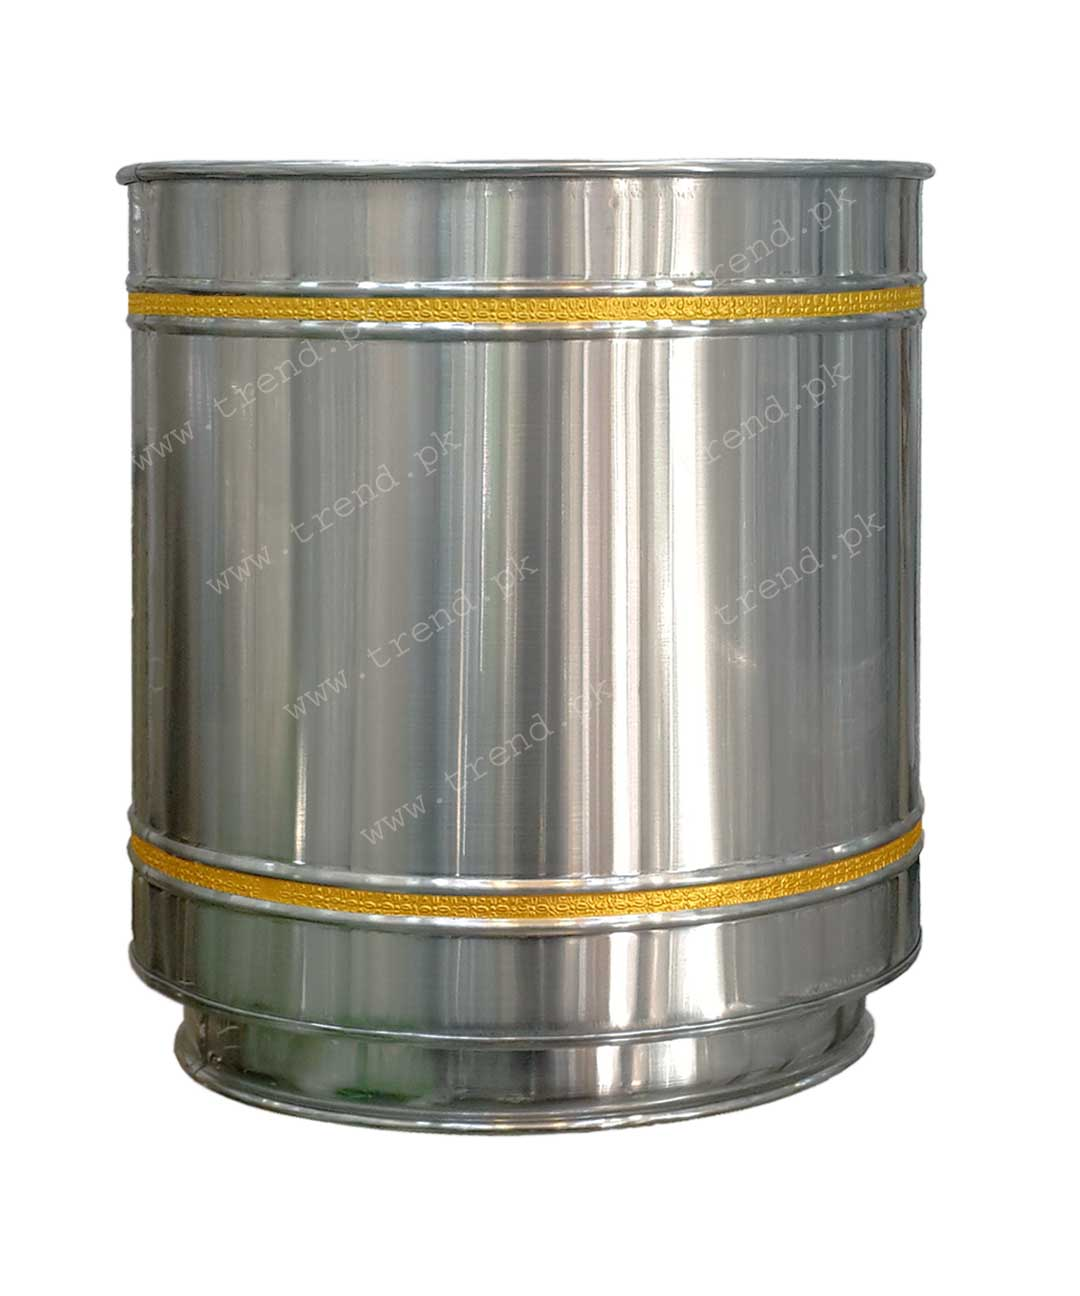 plant-pot-stainless-steel-decorated-with-grooves-and-pure-brass-strips-hand-crafted-planter